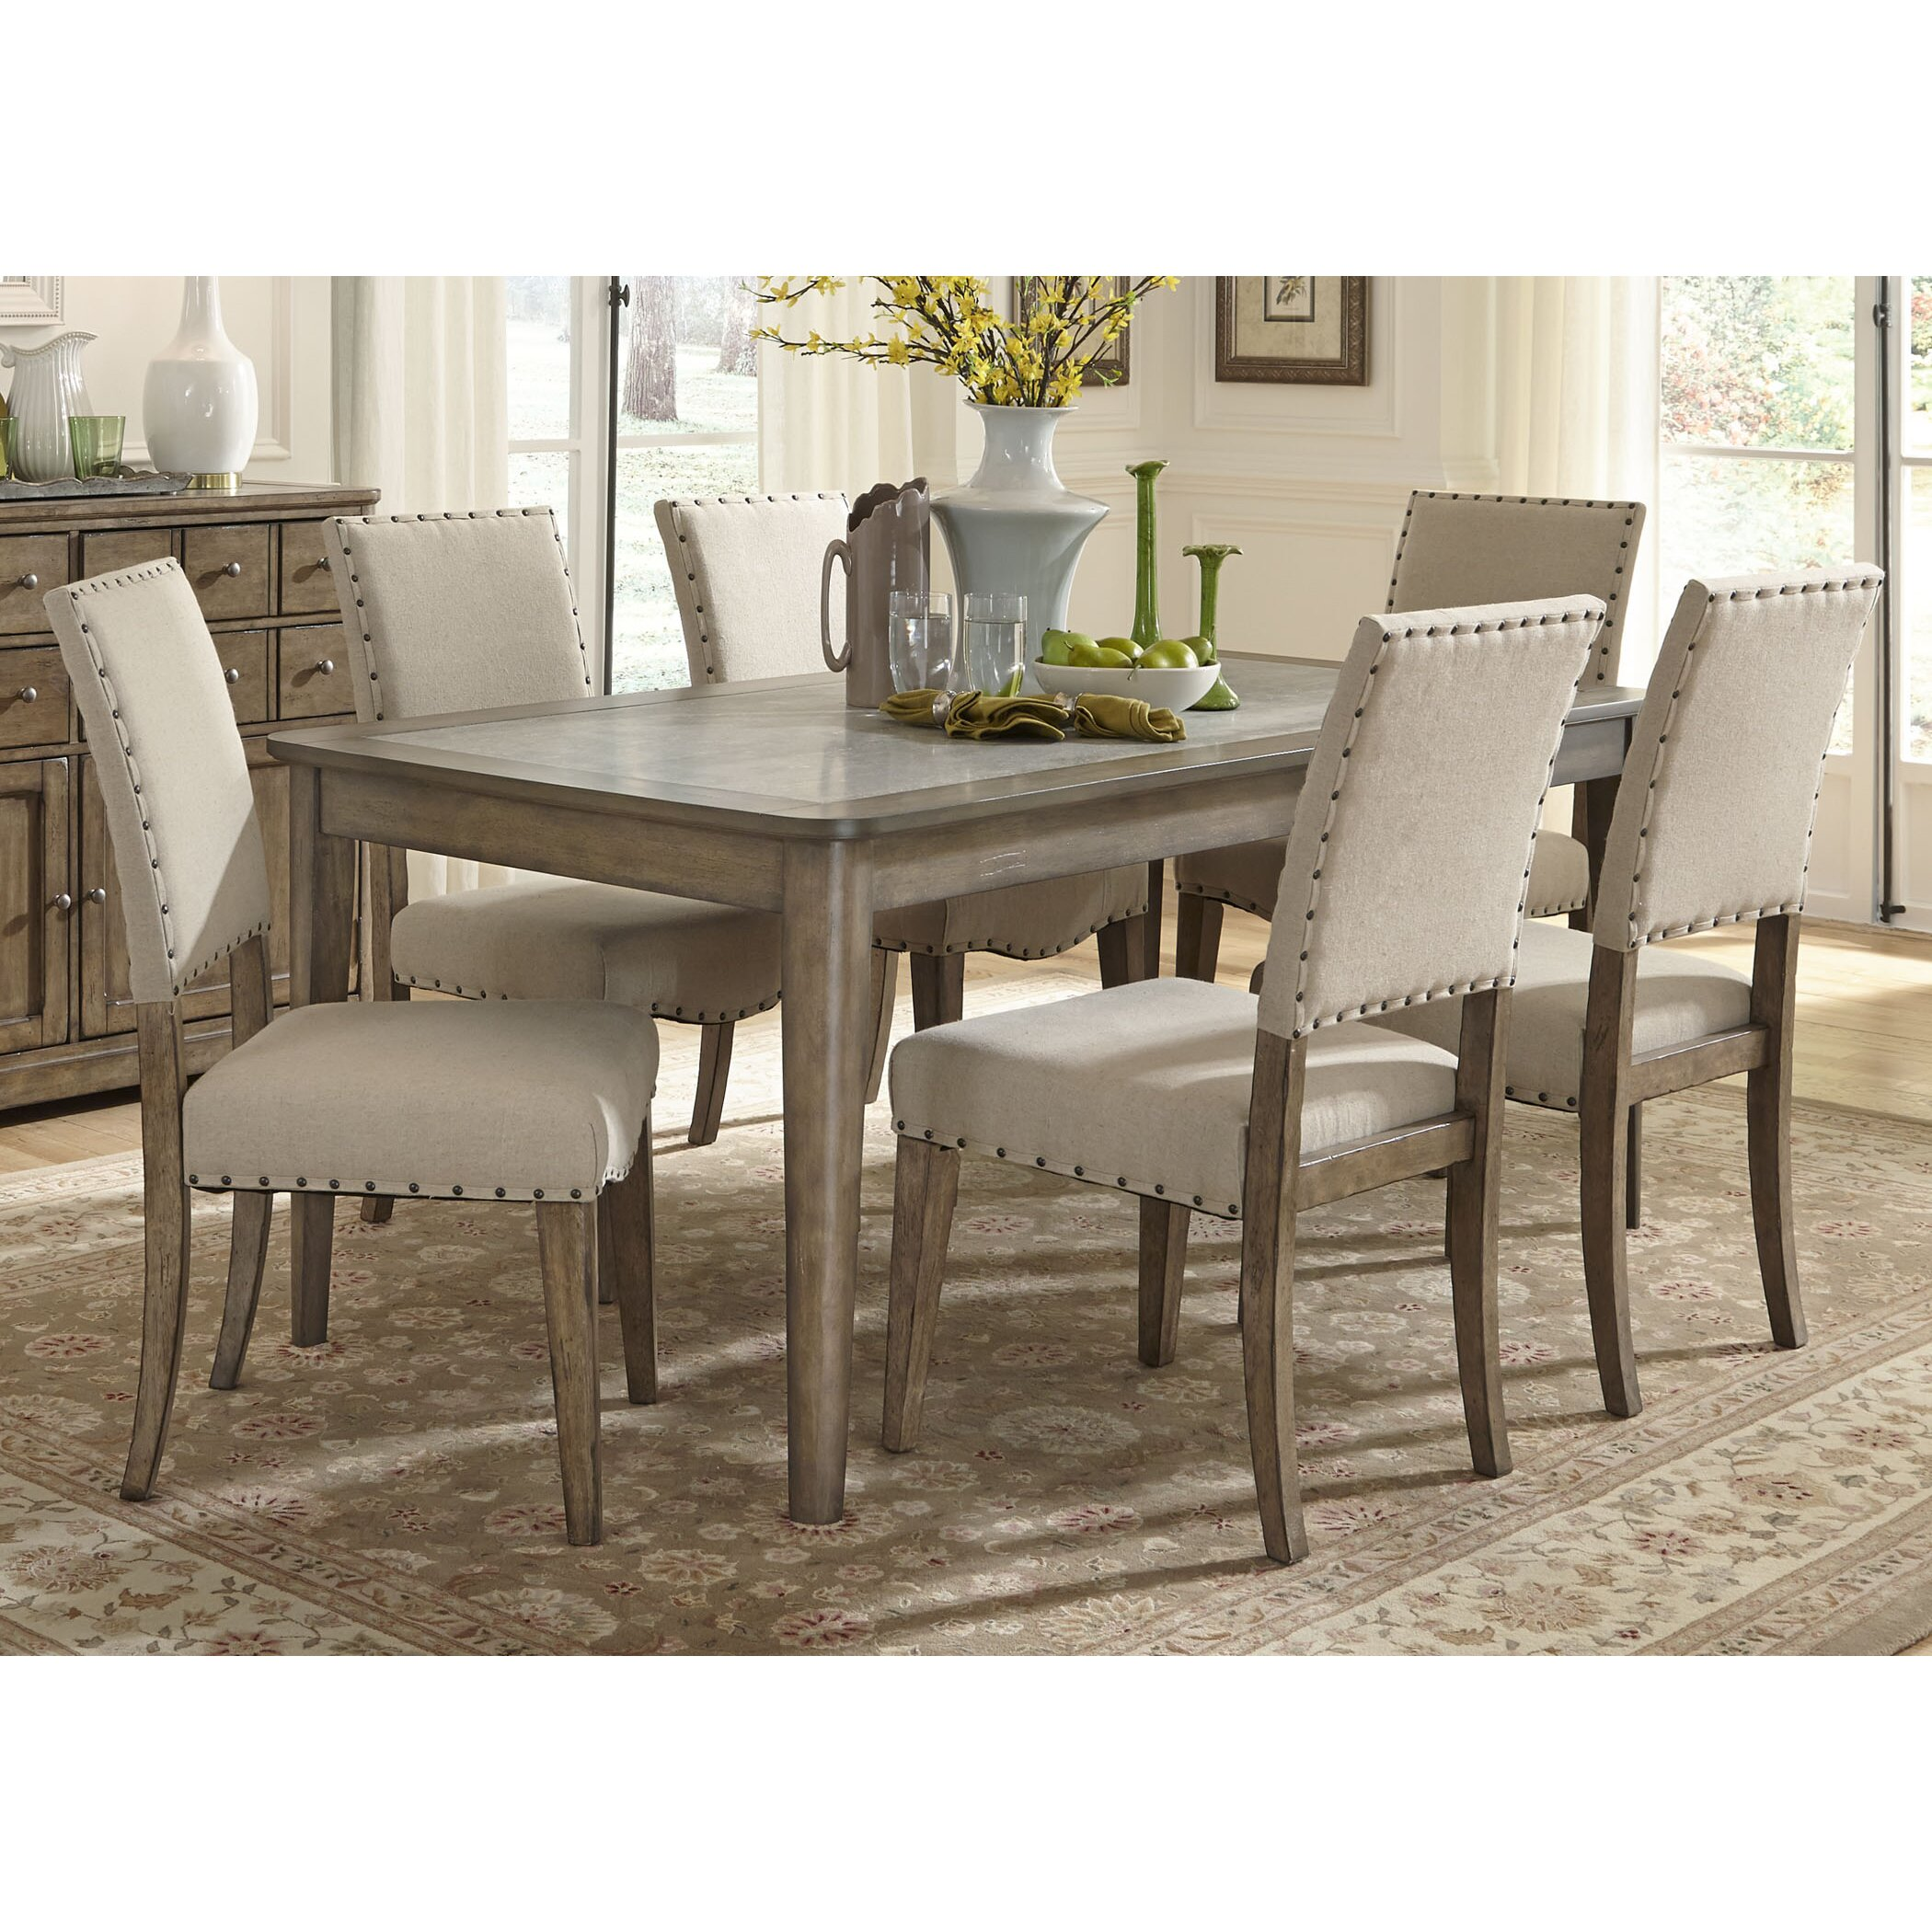 Liberty furniture 7 piece dining set reviews wayfair for Dining room kitchen sets